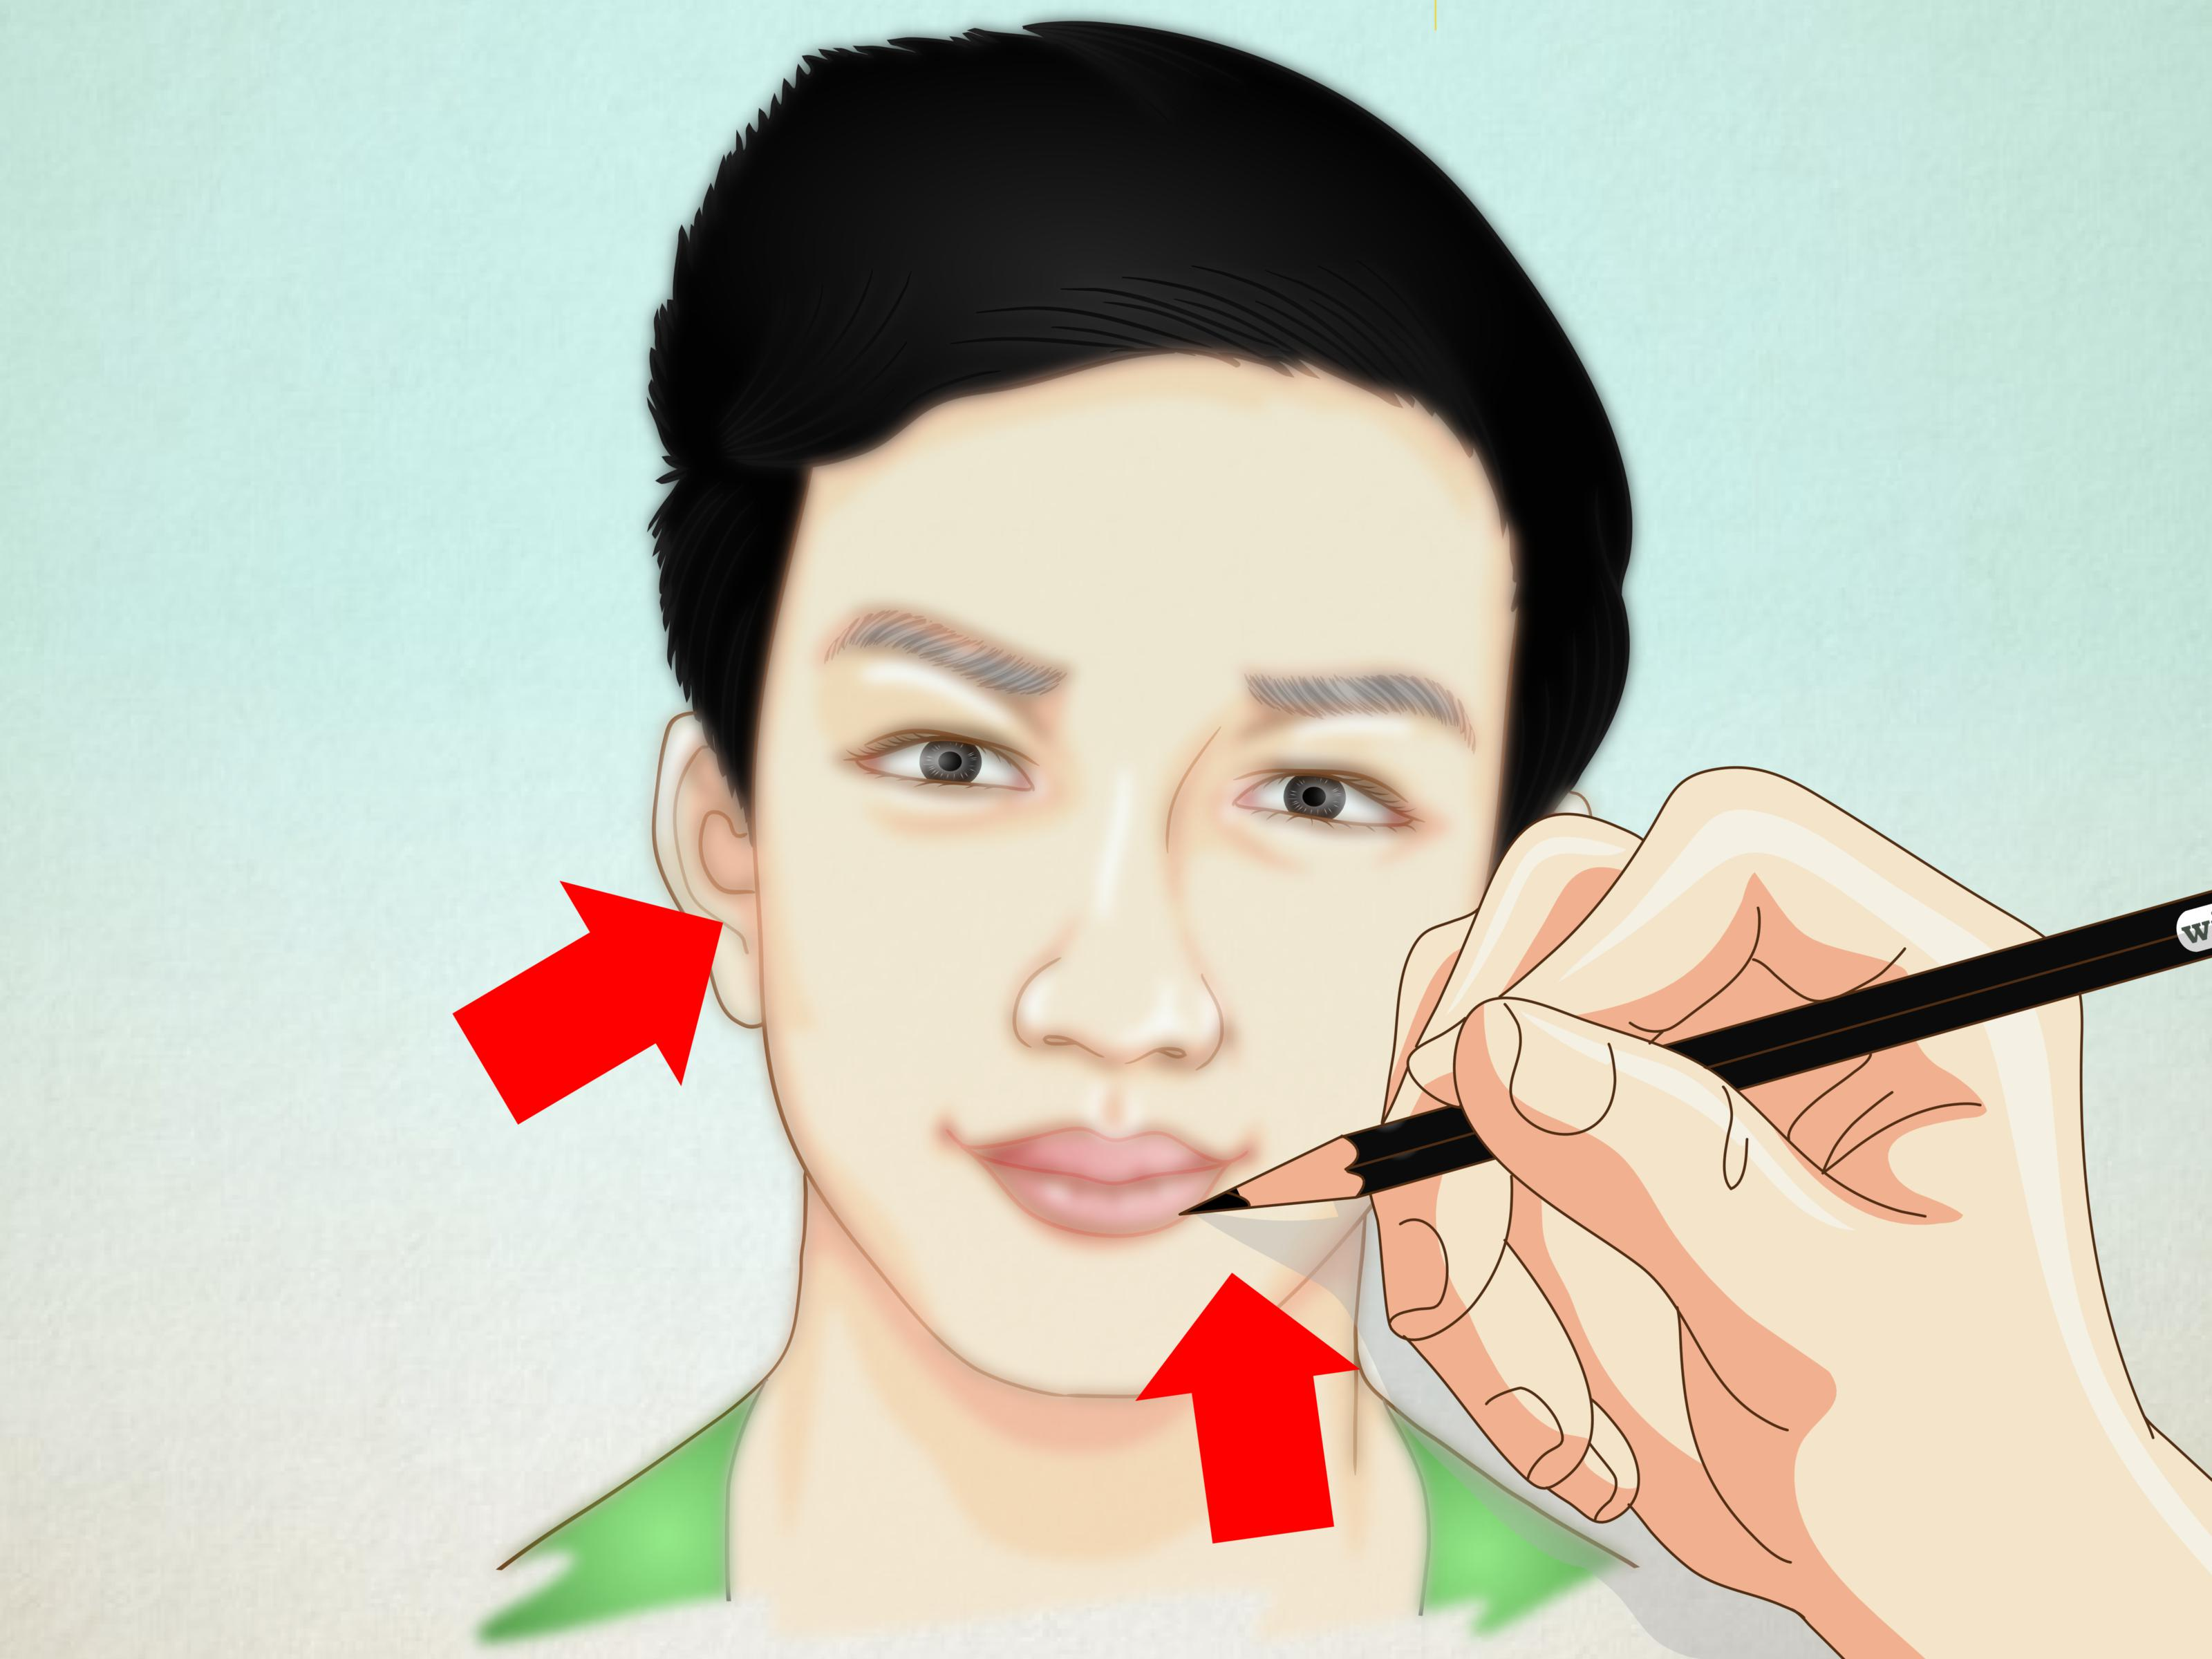 How To Draw A Self Portrait 8 Steps With Pictures